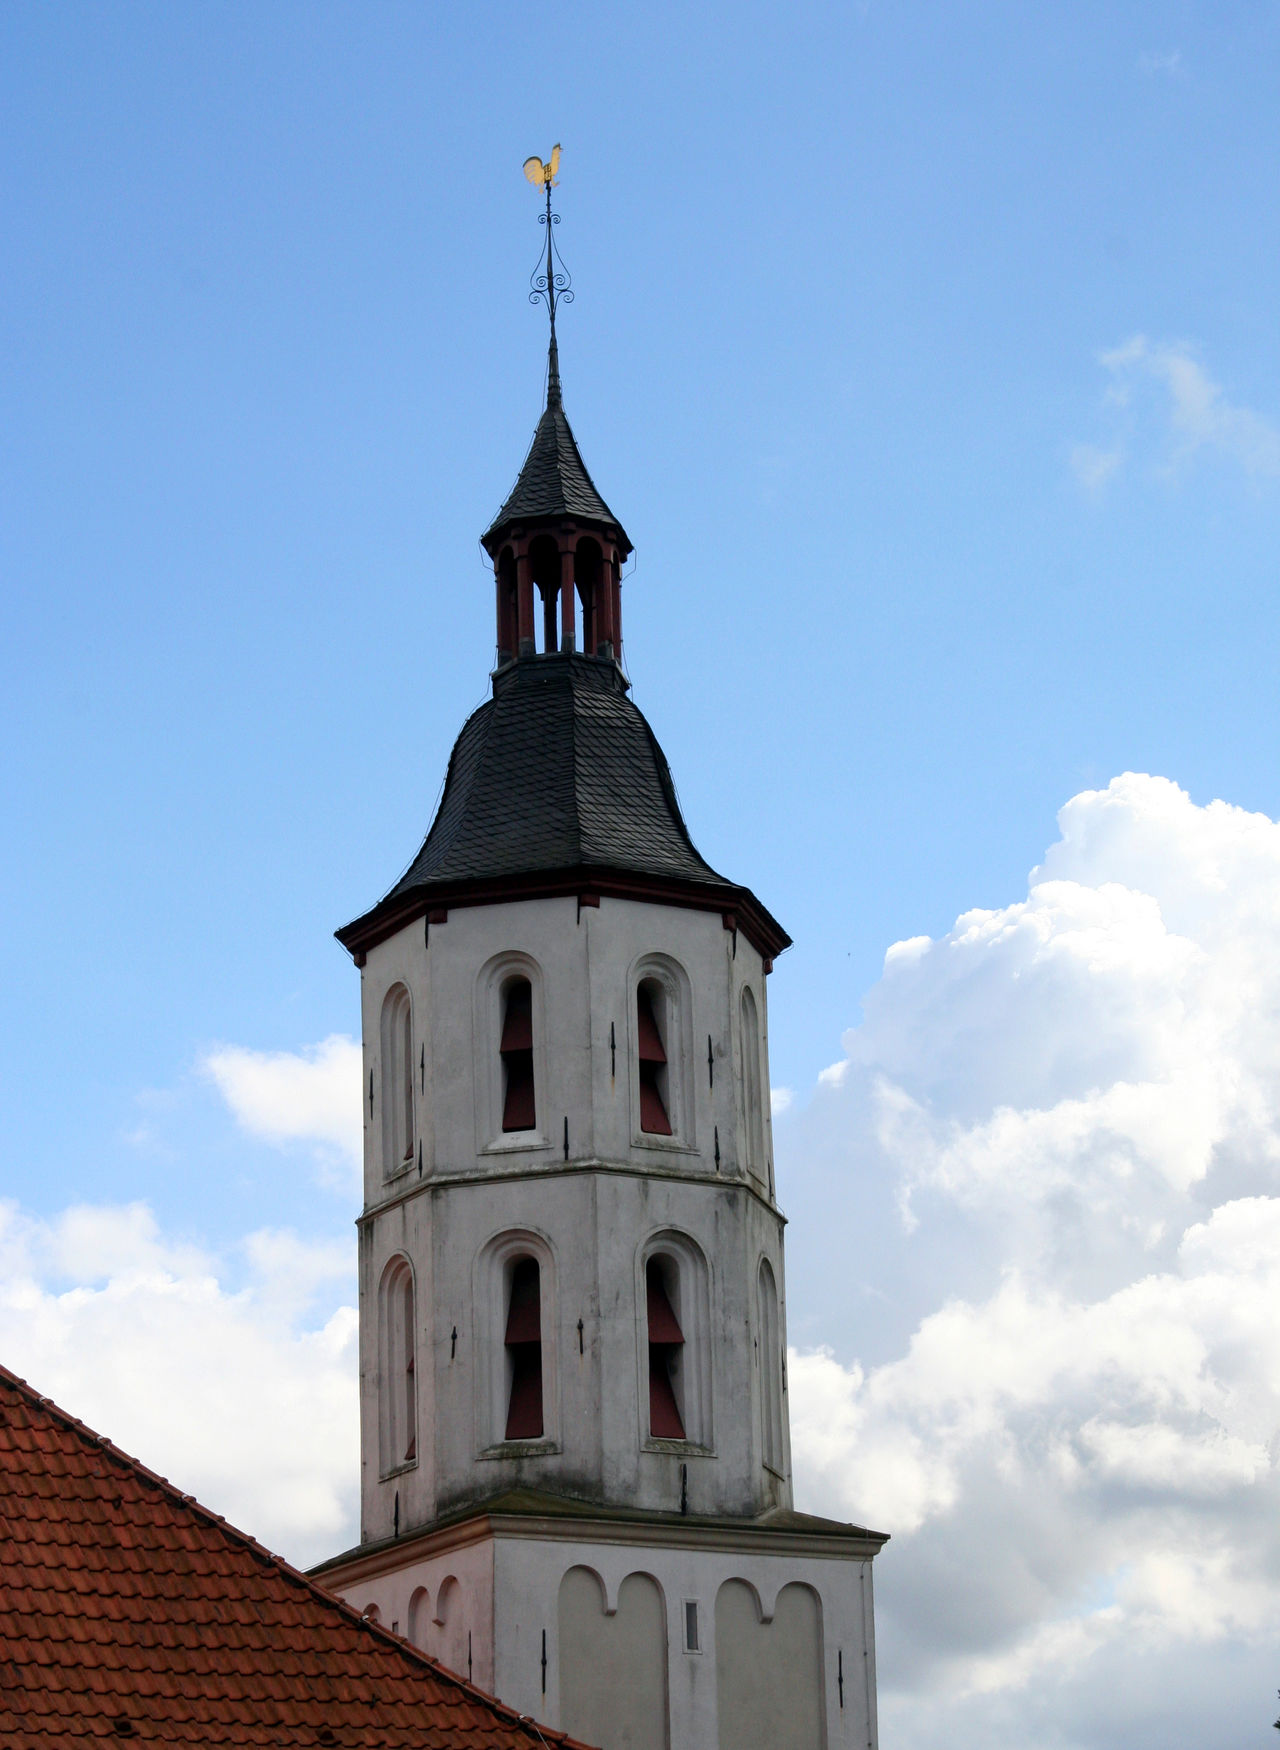 White Steeple Architecture Bell Tower Building Exterior Built Structure Catholic Catholic Church Catholicism Christian Christianity Clock Tower Cloud - Sky Faith Germany Low Angle View No People NRW Place Of Worship Religion Roof Spire  Spirituality Steeple Weathercock White Xanten